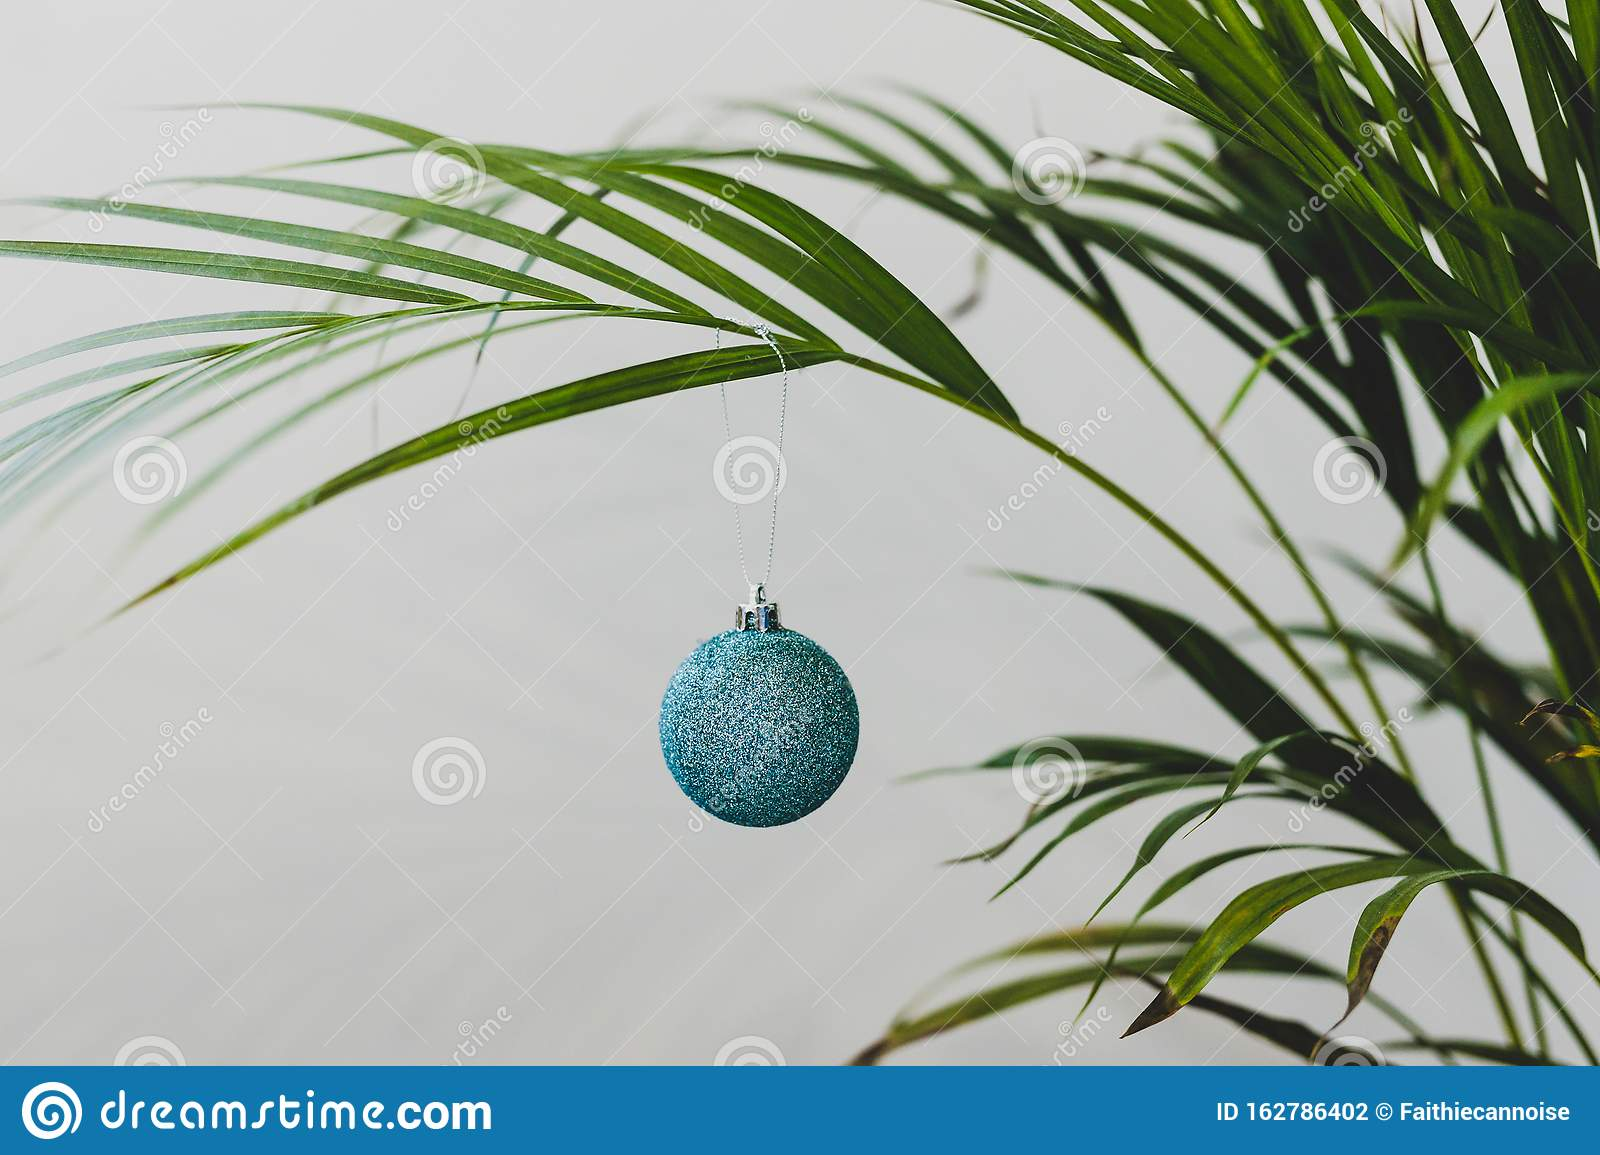 Alternative Christmas Tree Palm Plant With Christmas Baubles For The Festive Season In Summer For The Southern Hemisphere Stock Photo Image Of Chirstmas Giving 162786402